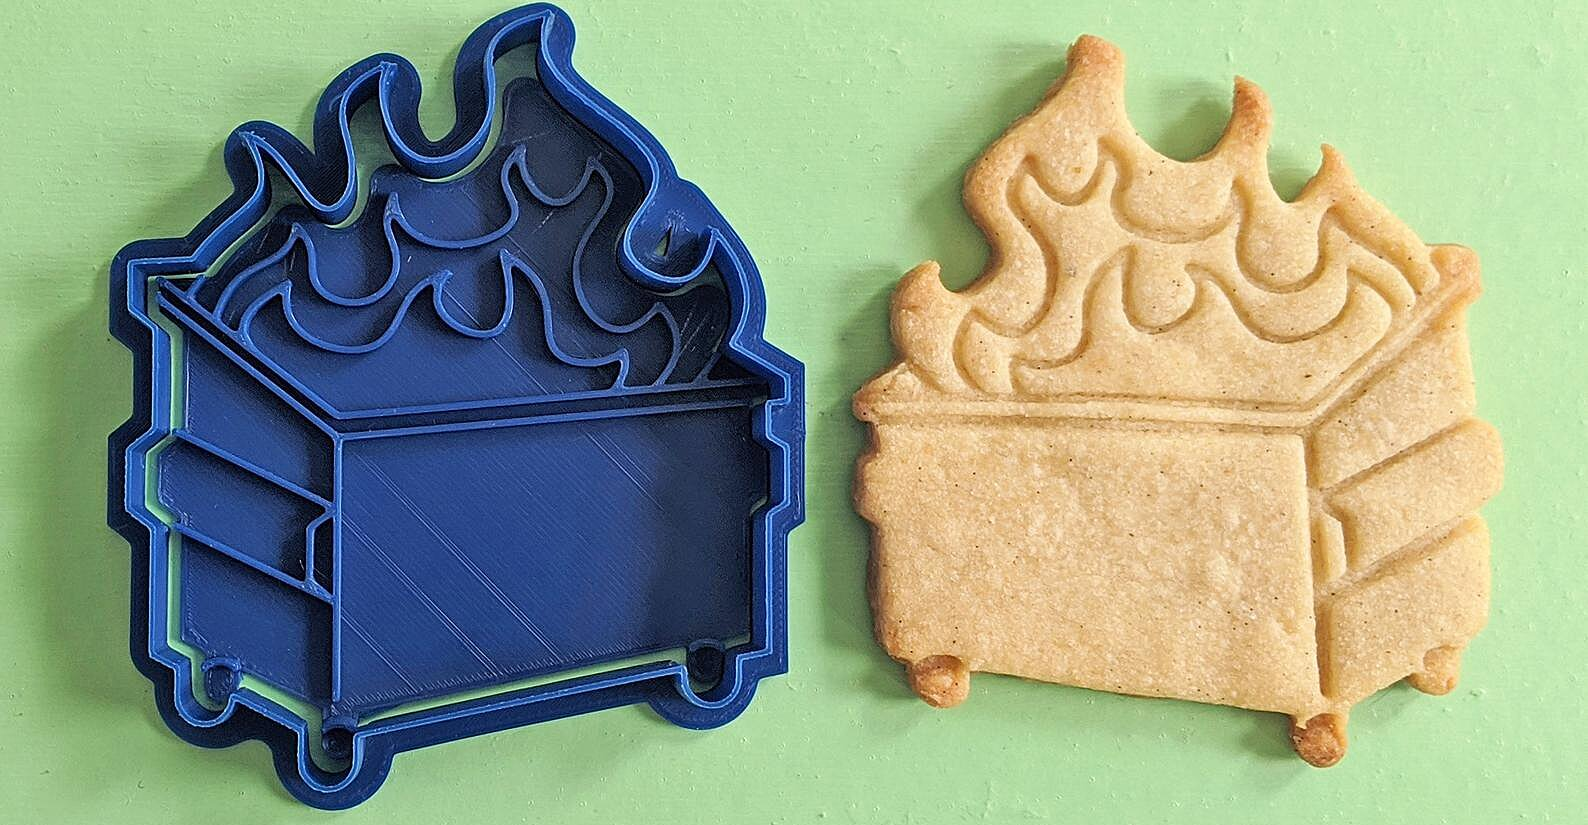 This Dumpster Fire Cookie Cutter Is the Perfect Way to Close Out 2020